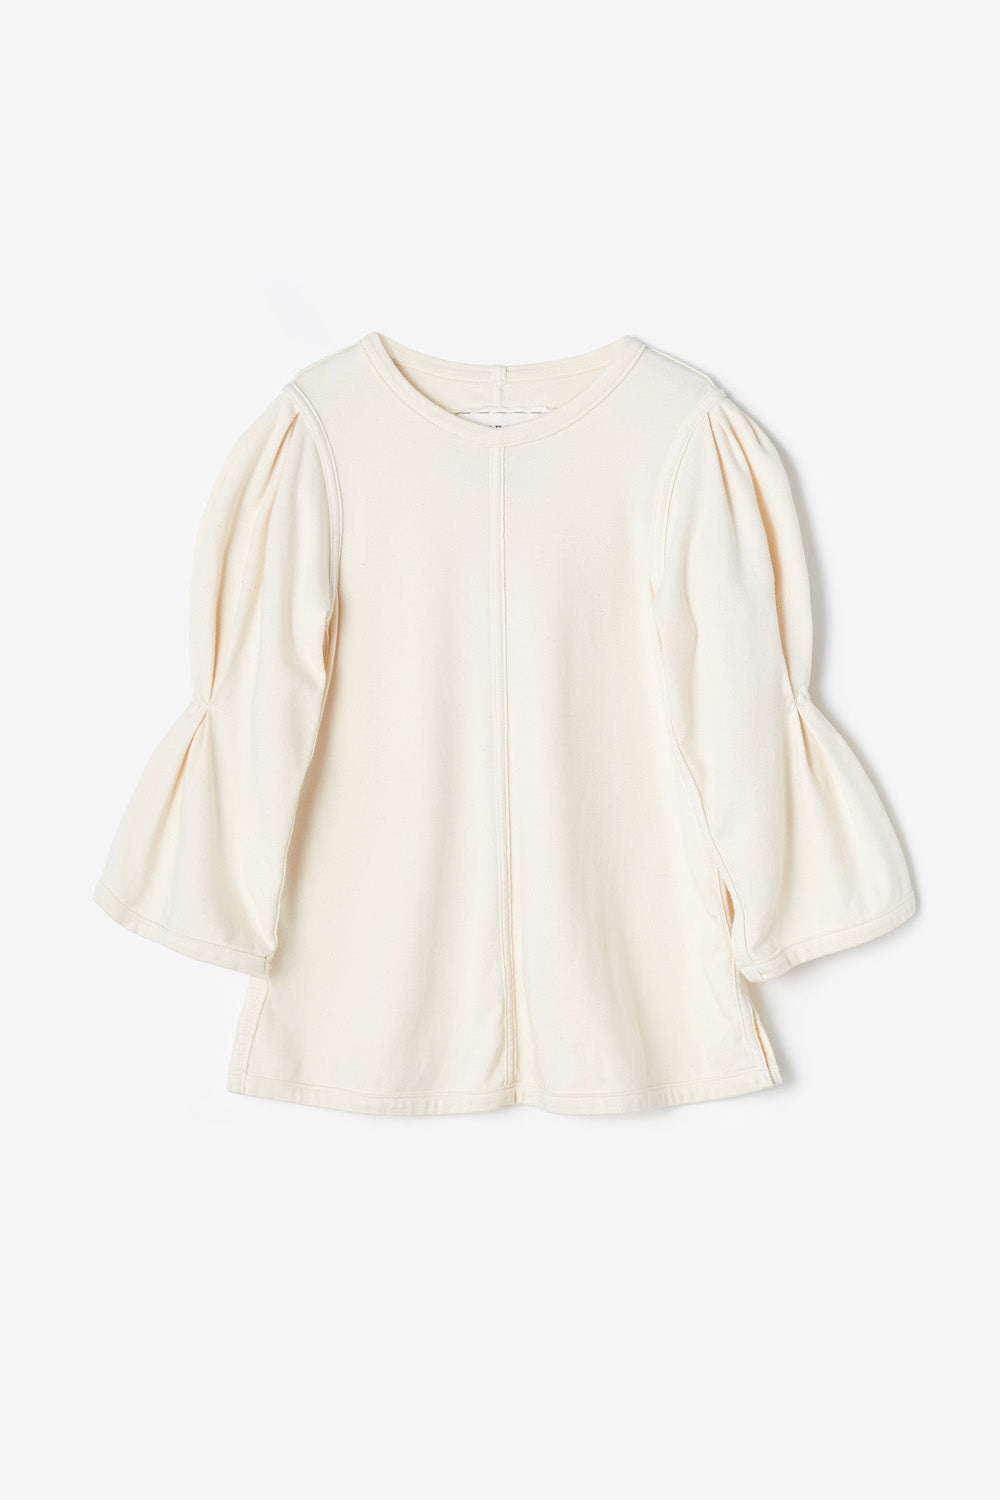 Alabama Chanin Willie Top Machine sewn top with Elbow Sleeve in Natural